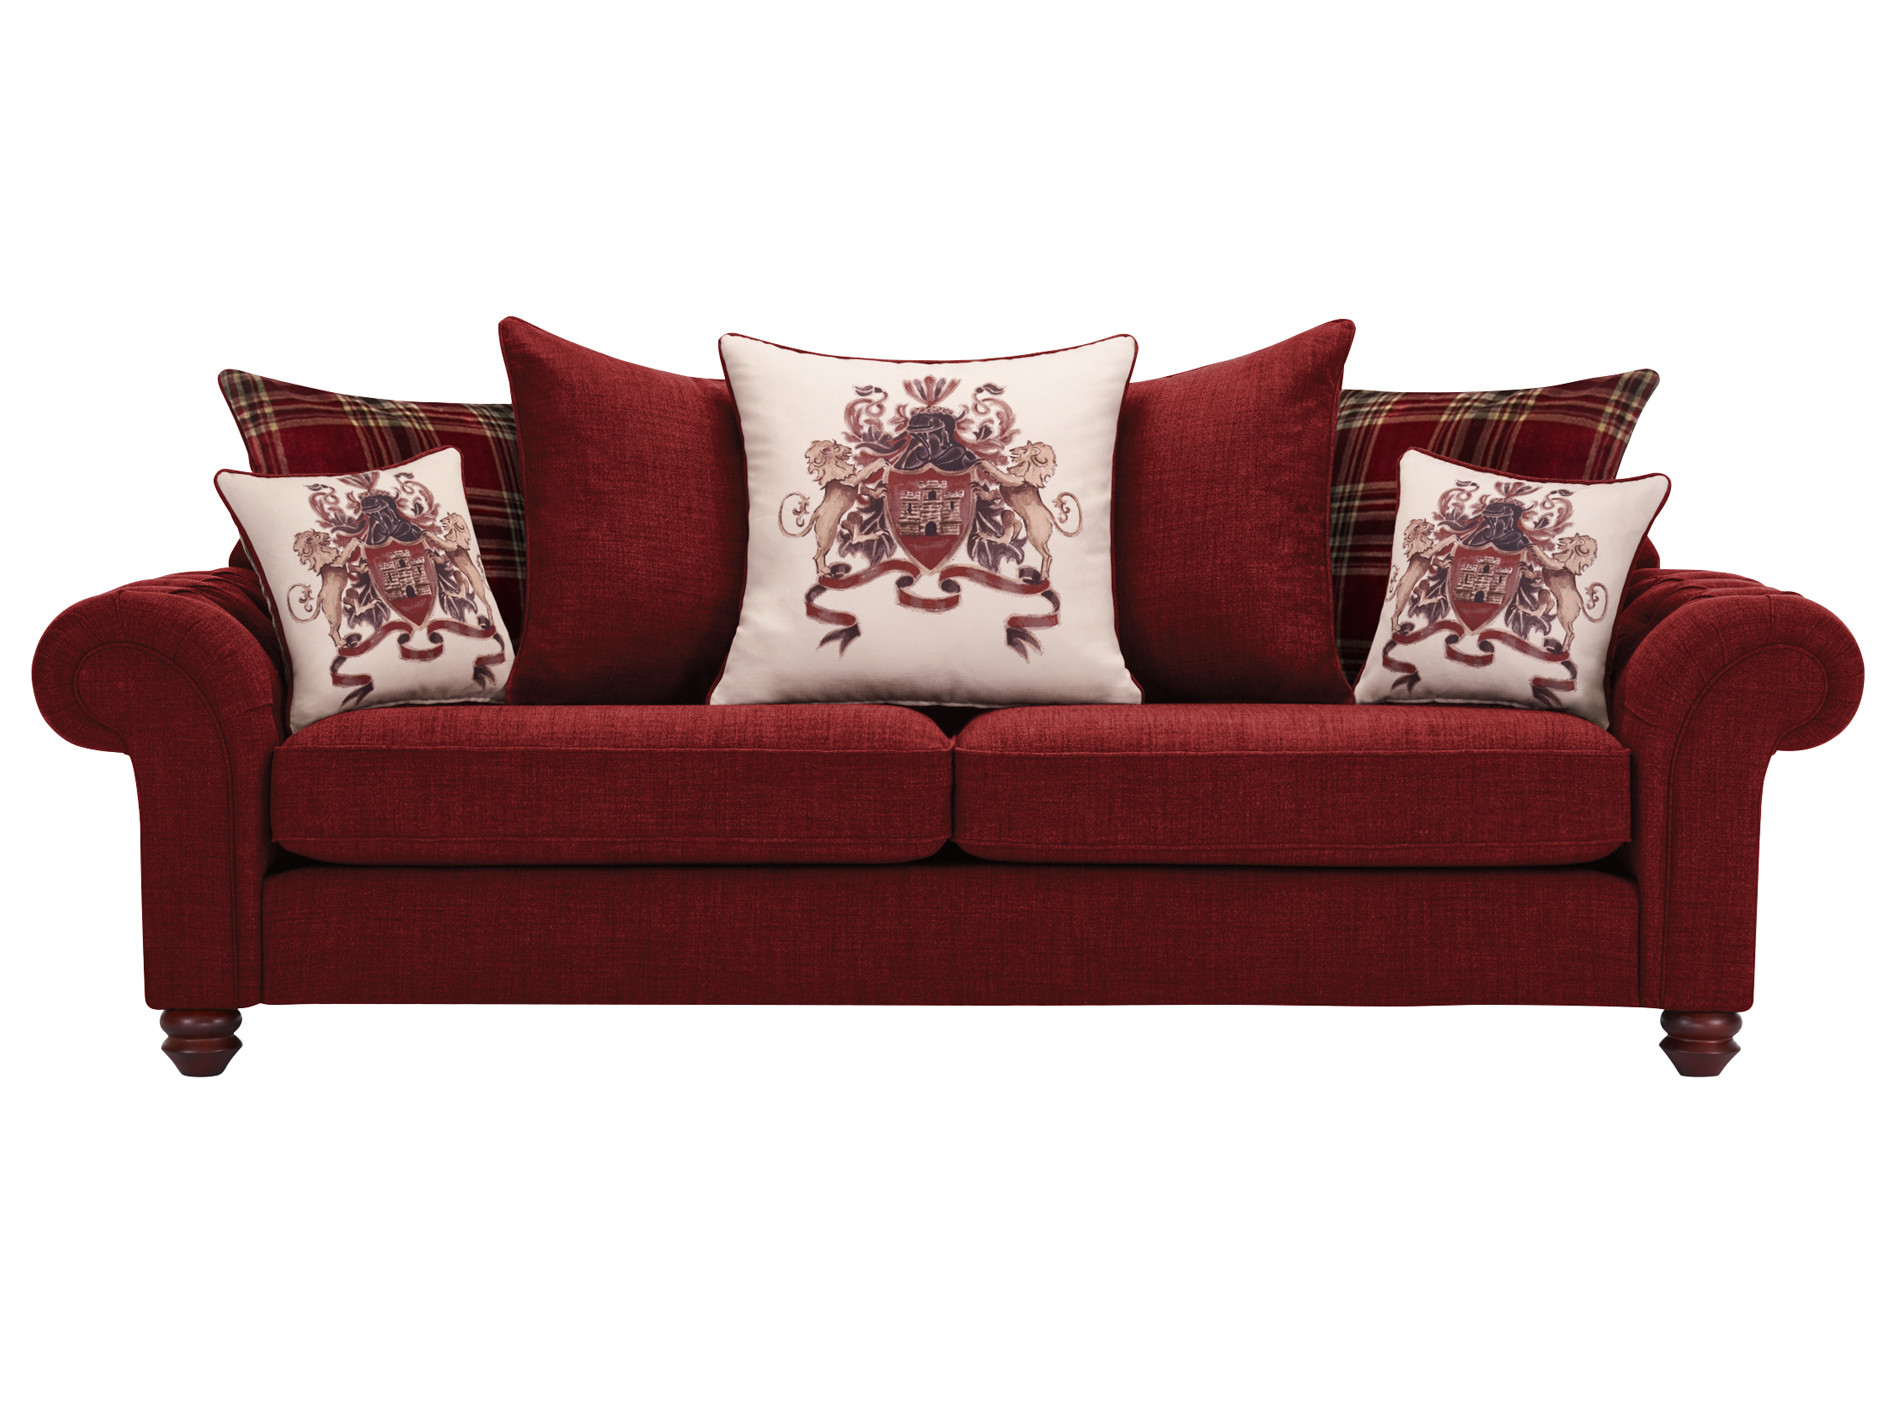 big pillows for sofas sectional sofa vancouver sandringham extra large pillow back in red with